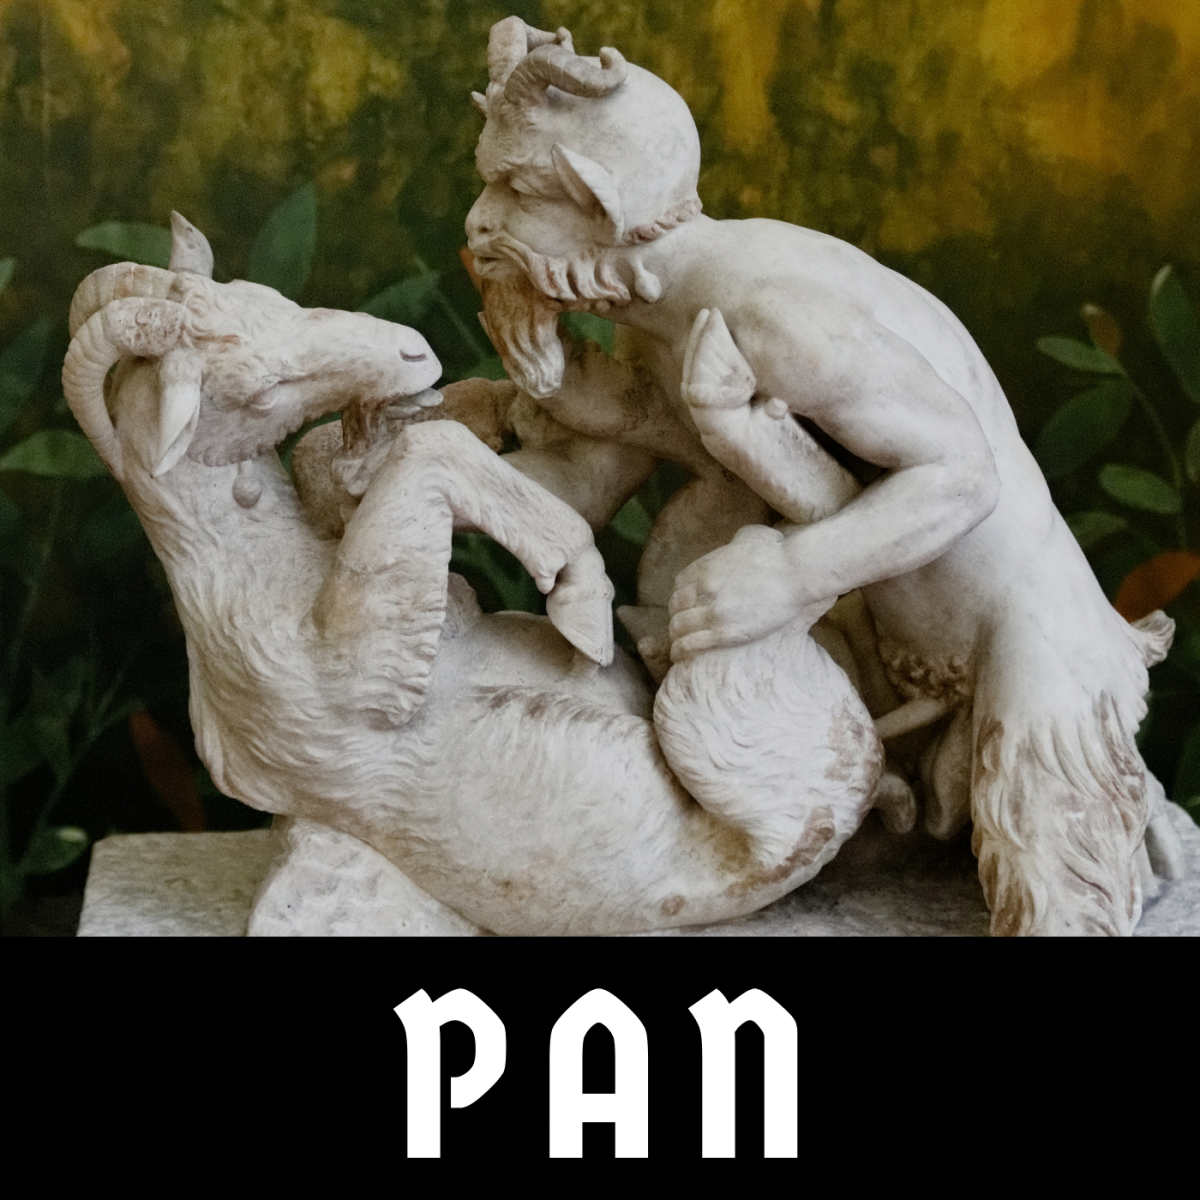 Pan is depicted here copulating with a goat.